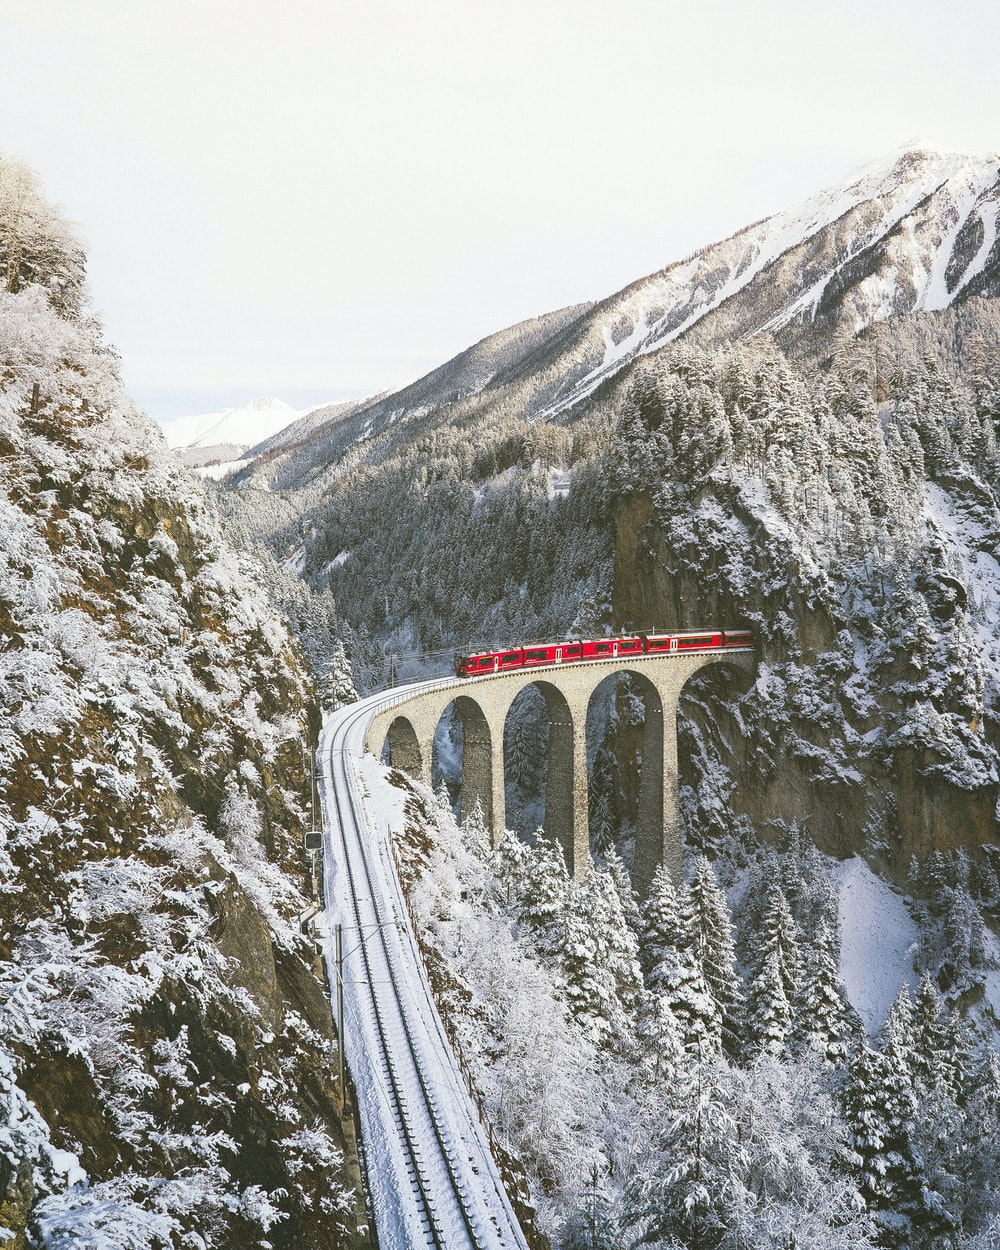 approaching red train across mountains